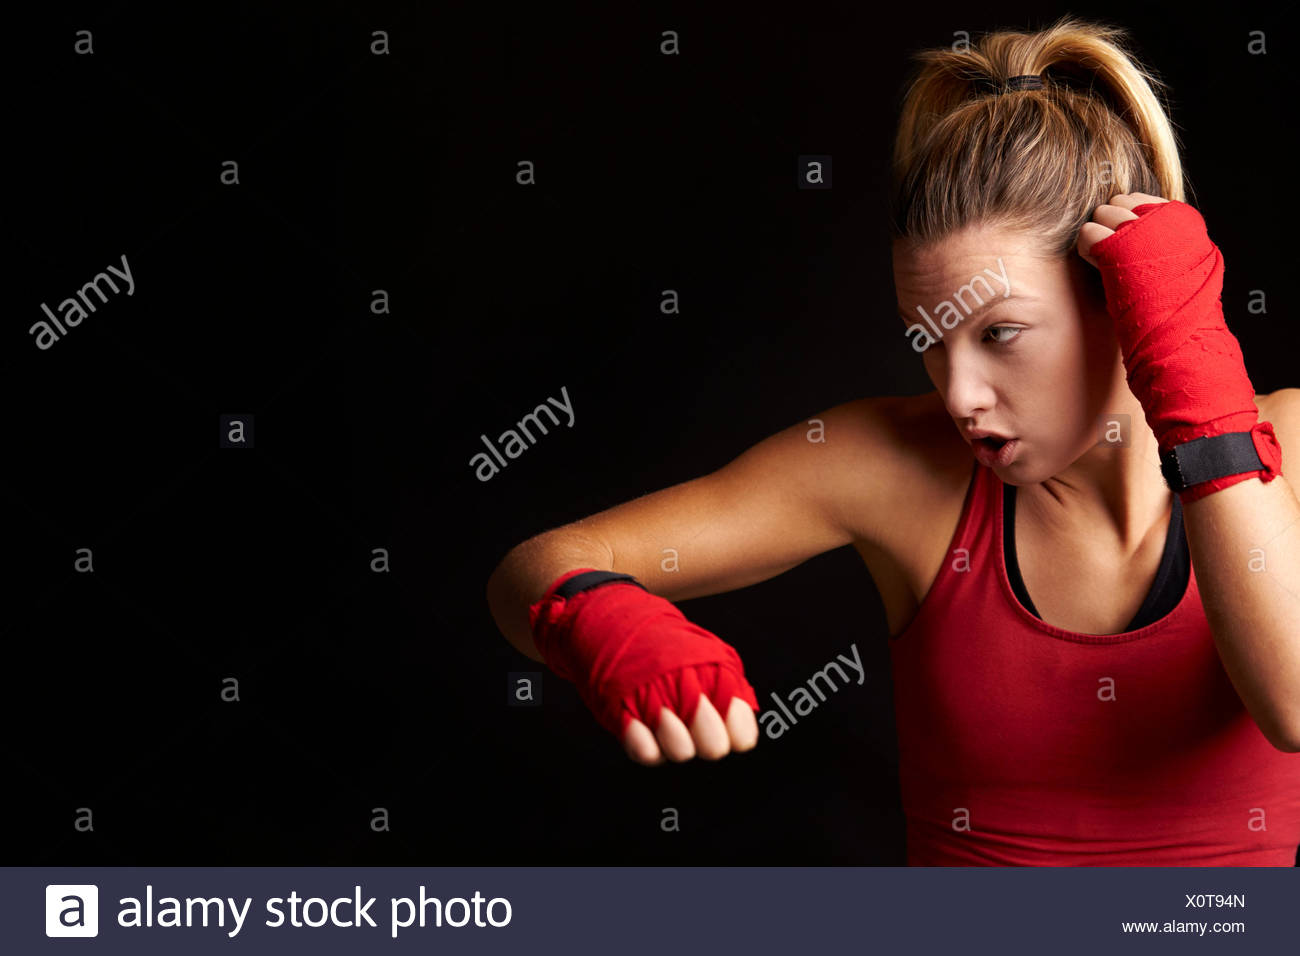 Young blonde woman shadow boxing with arm bent in defence - Stock Image